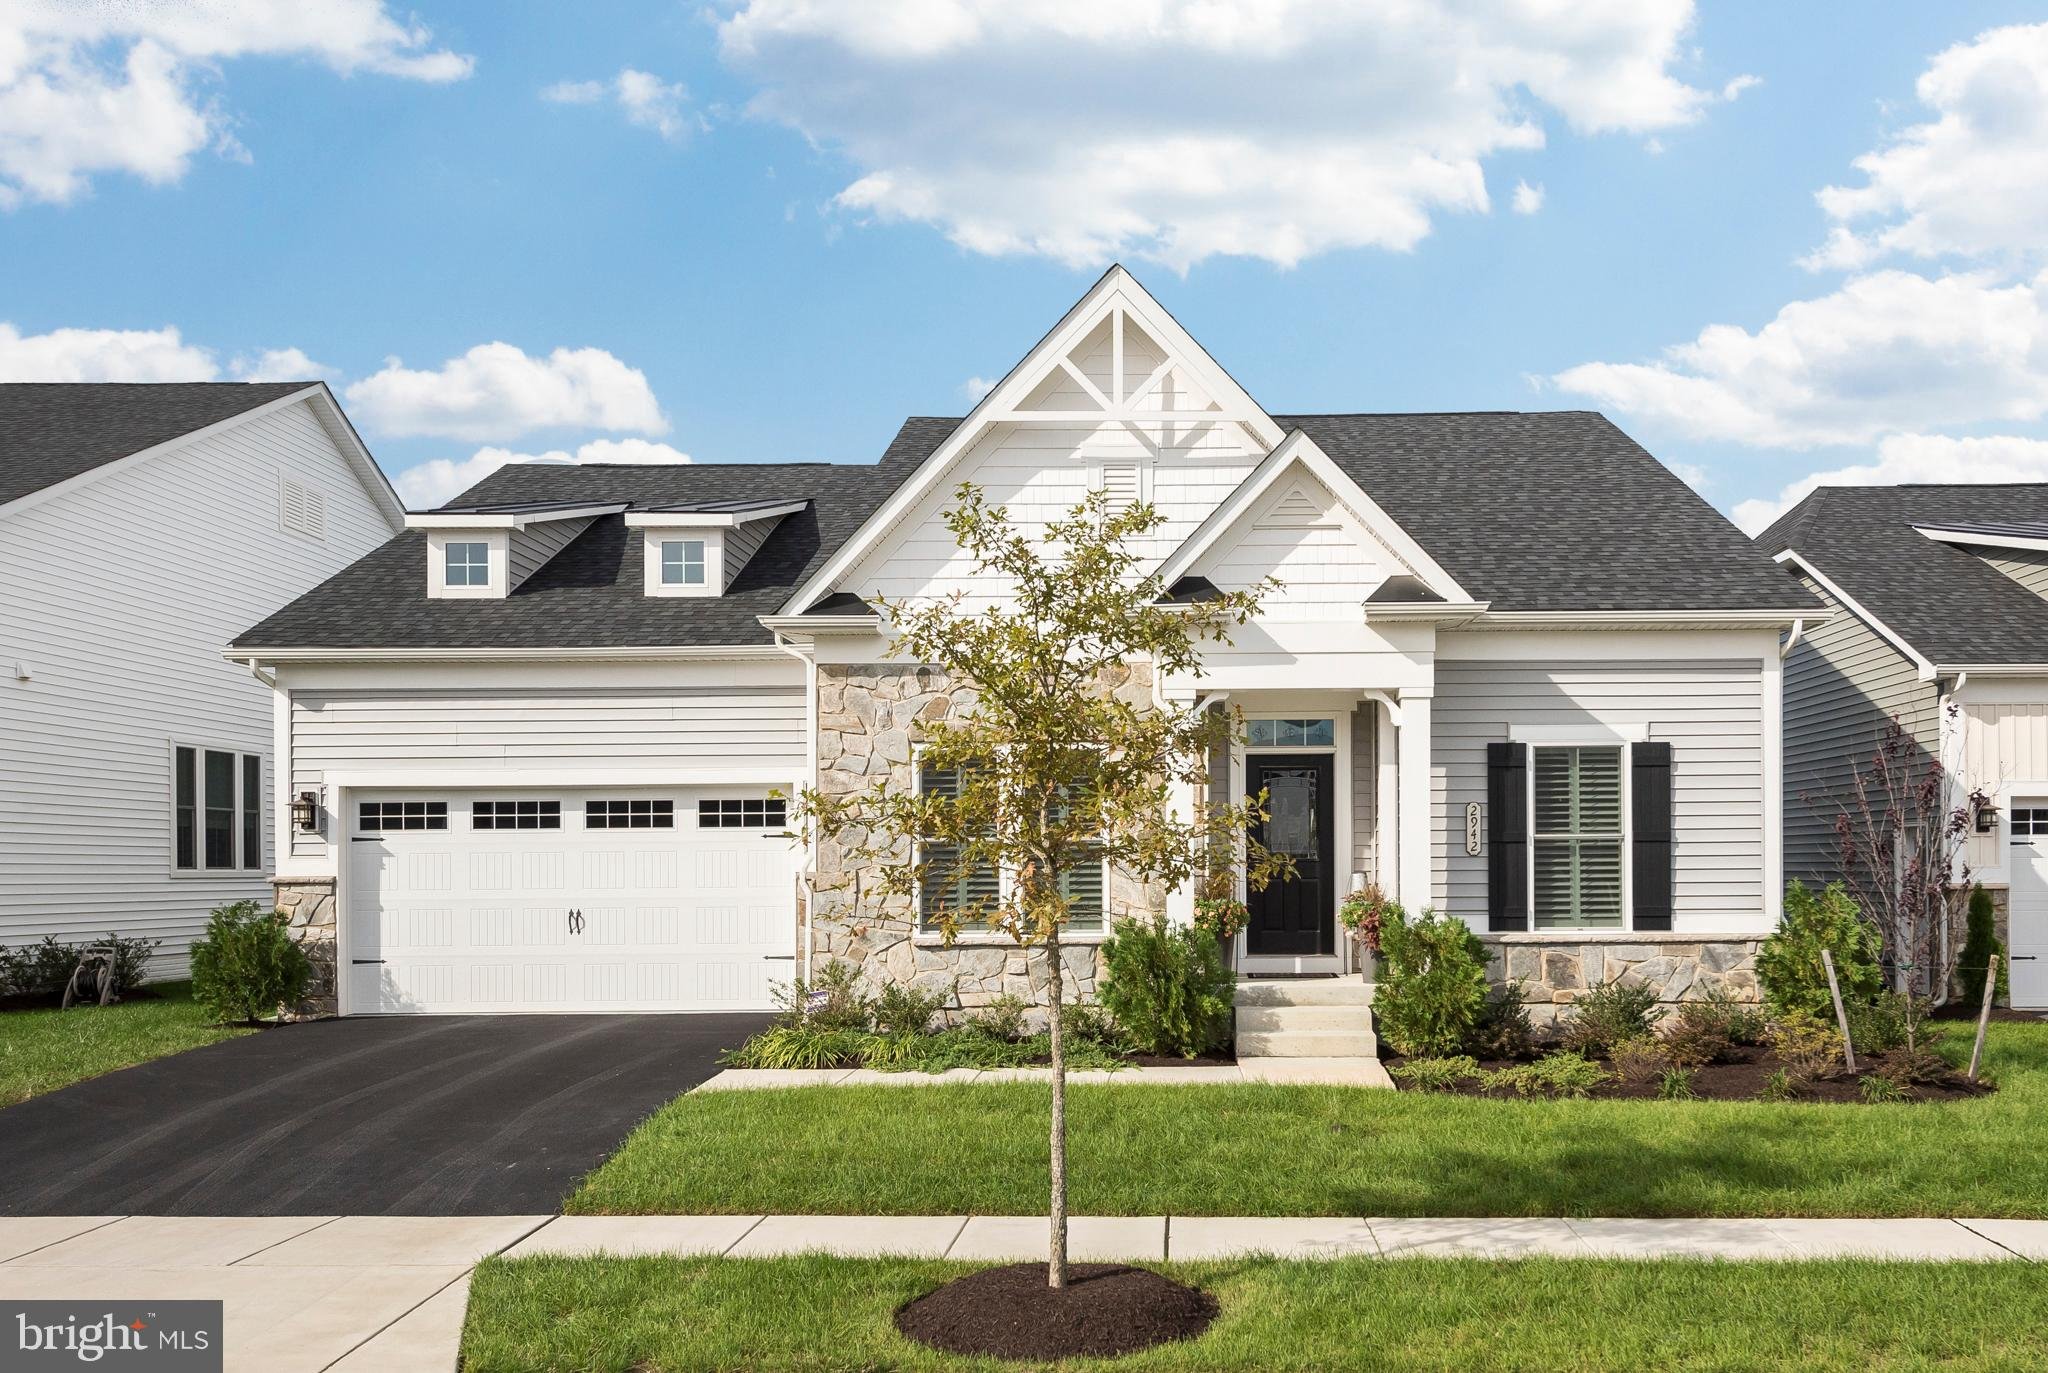 2942 LEVEE DRIVE, ODENTON, MD 21113